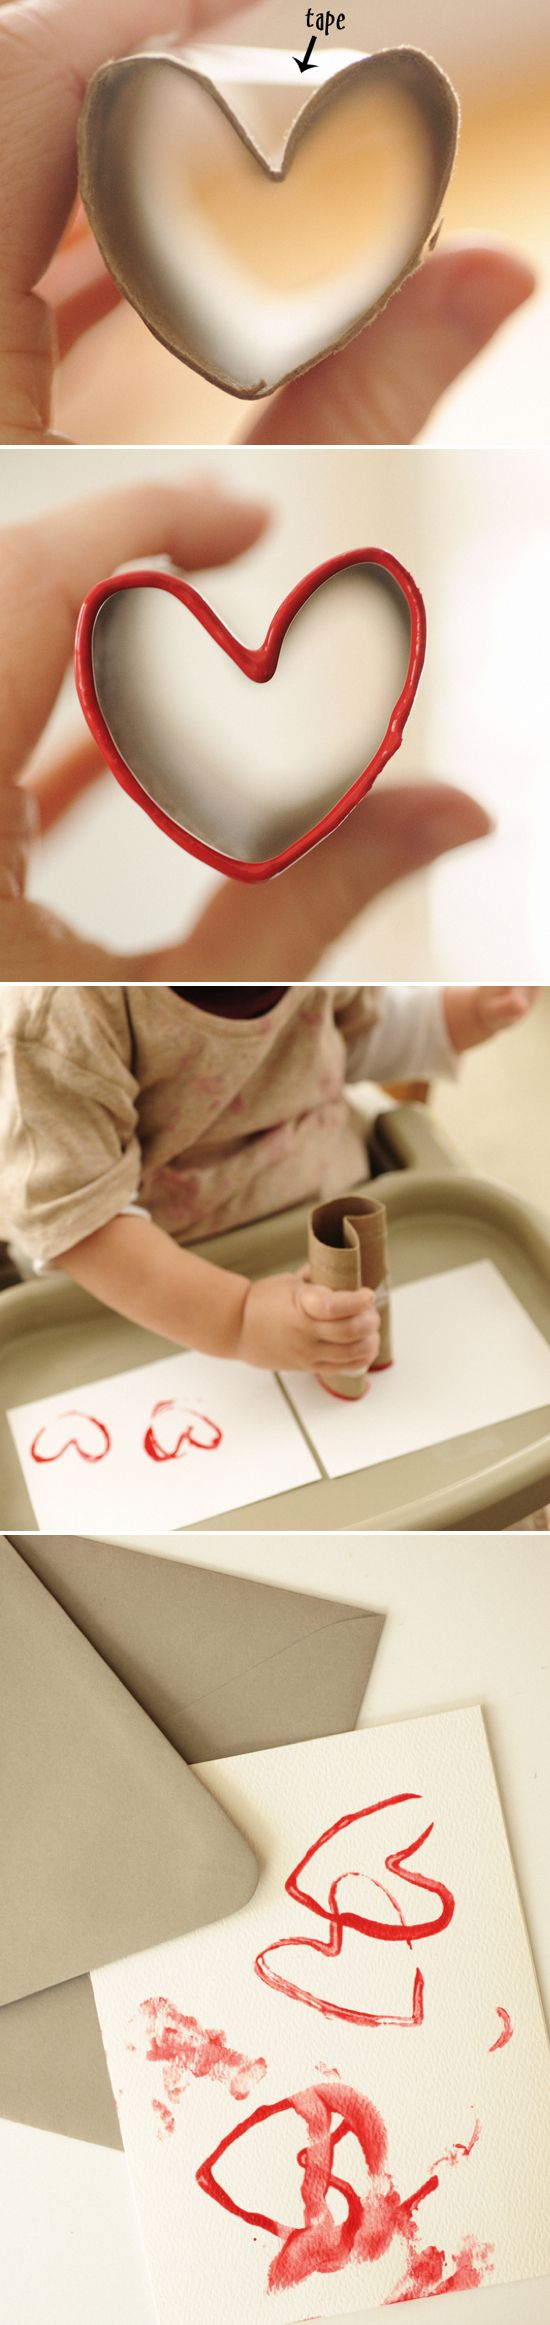 Never too young for some fine motor crafts // free crafts for kids, toddler crafts, visual motor play, play skills, color recognition, shape recognition